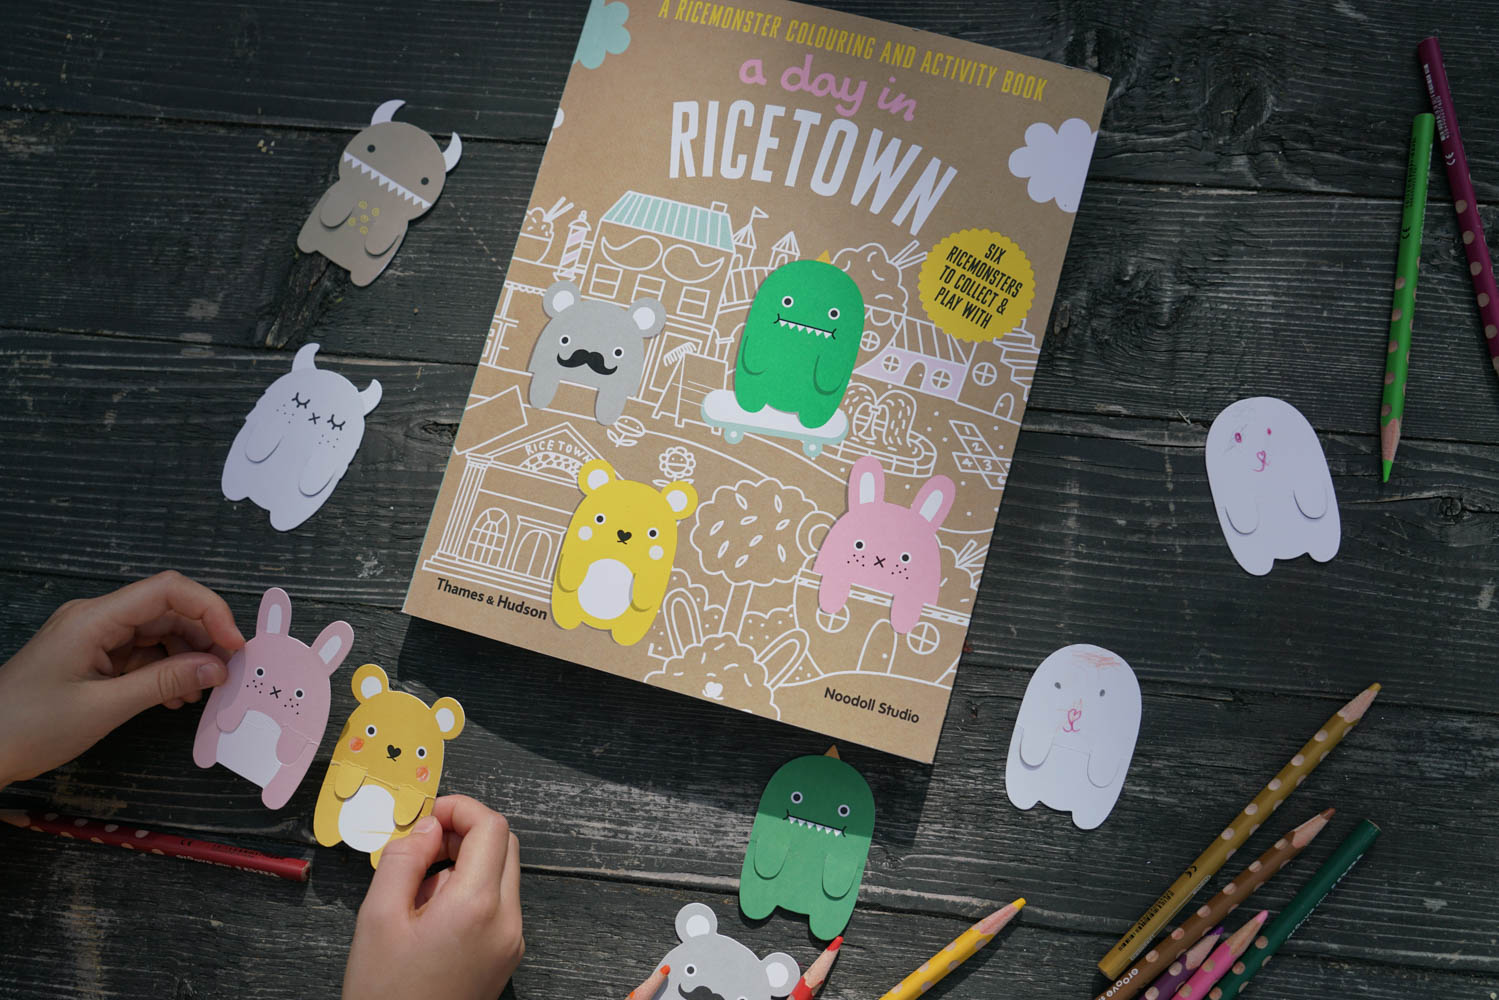 A day in Ricetown activity and colouring book